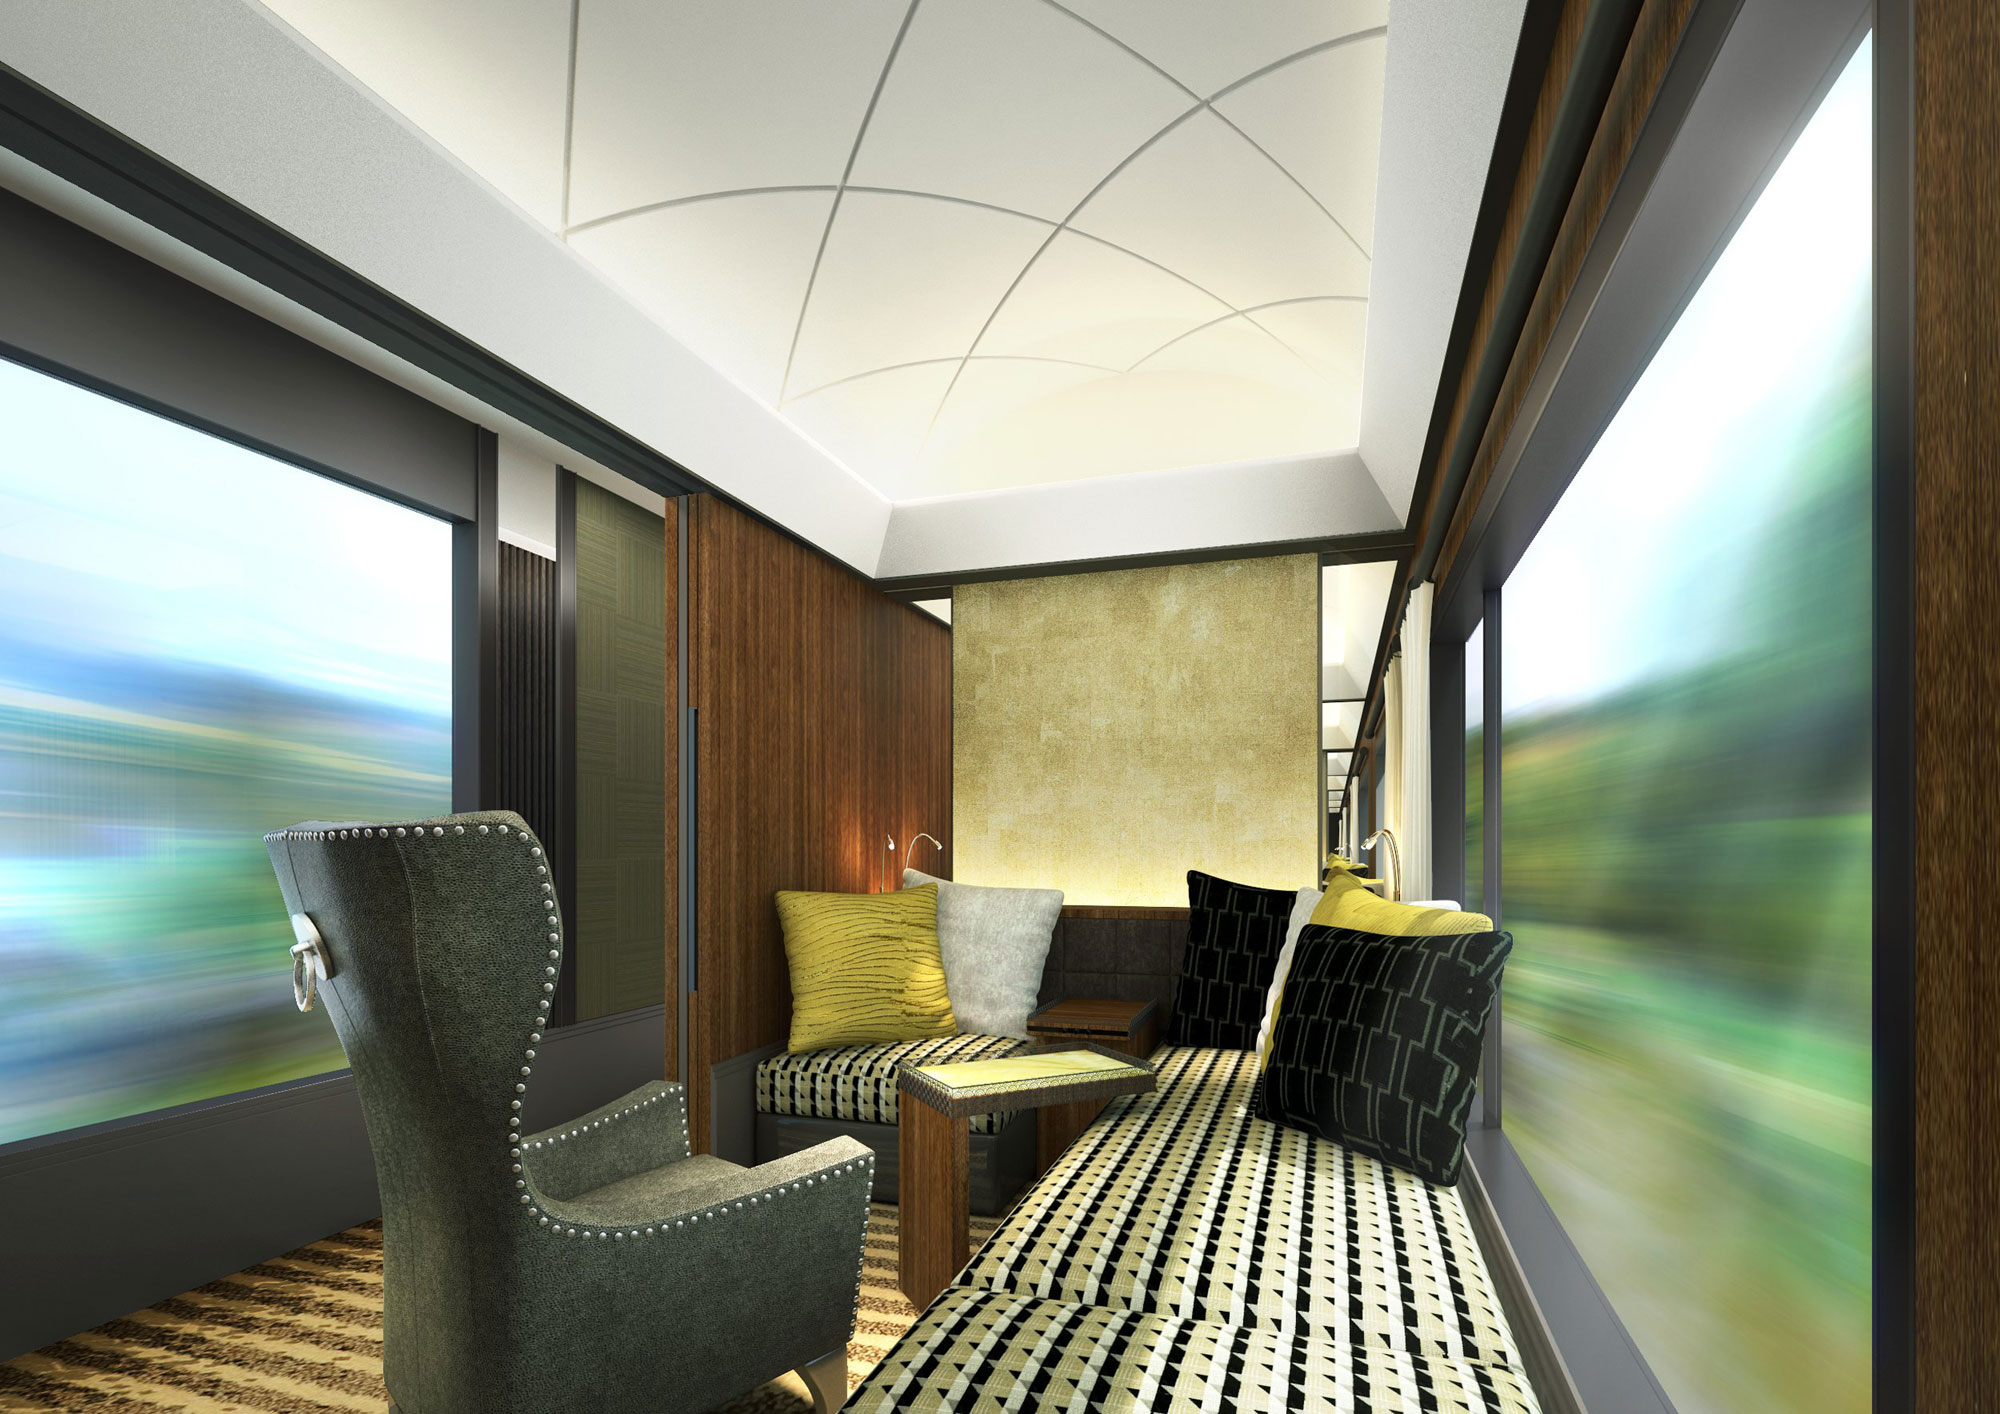 An example of a second class compartment on JR West's luxury cruise train.